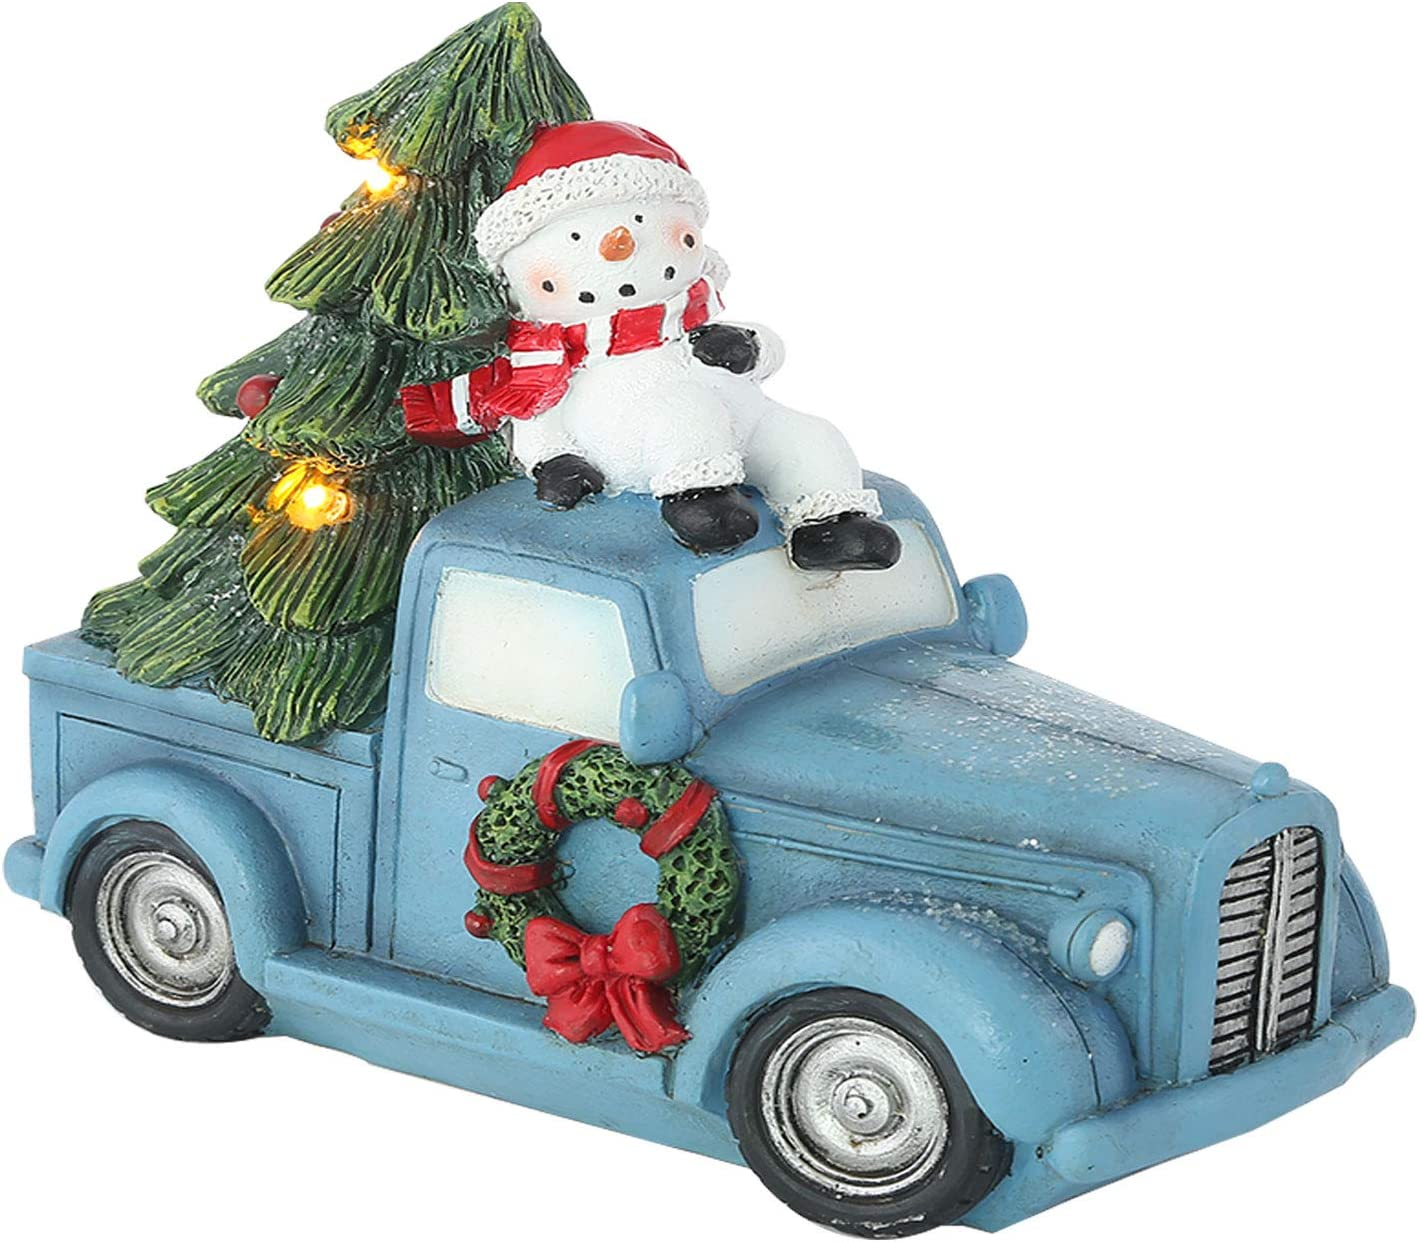 TZSSP Lighted Decorations Tree and Vintage Truck - Tabletop Decor and Christmas Tree Lights Blue Red Pick Up Truck Snowman in Car Figurine